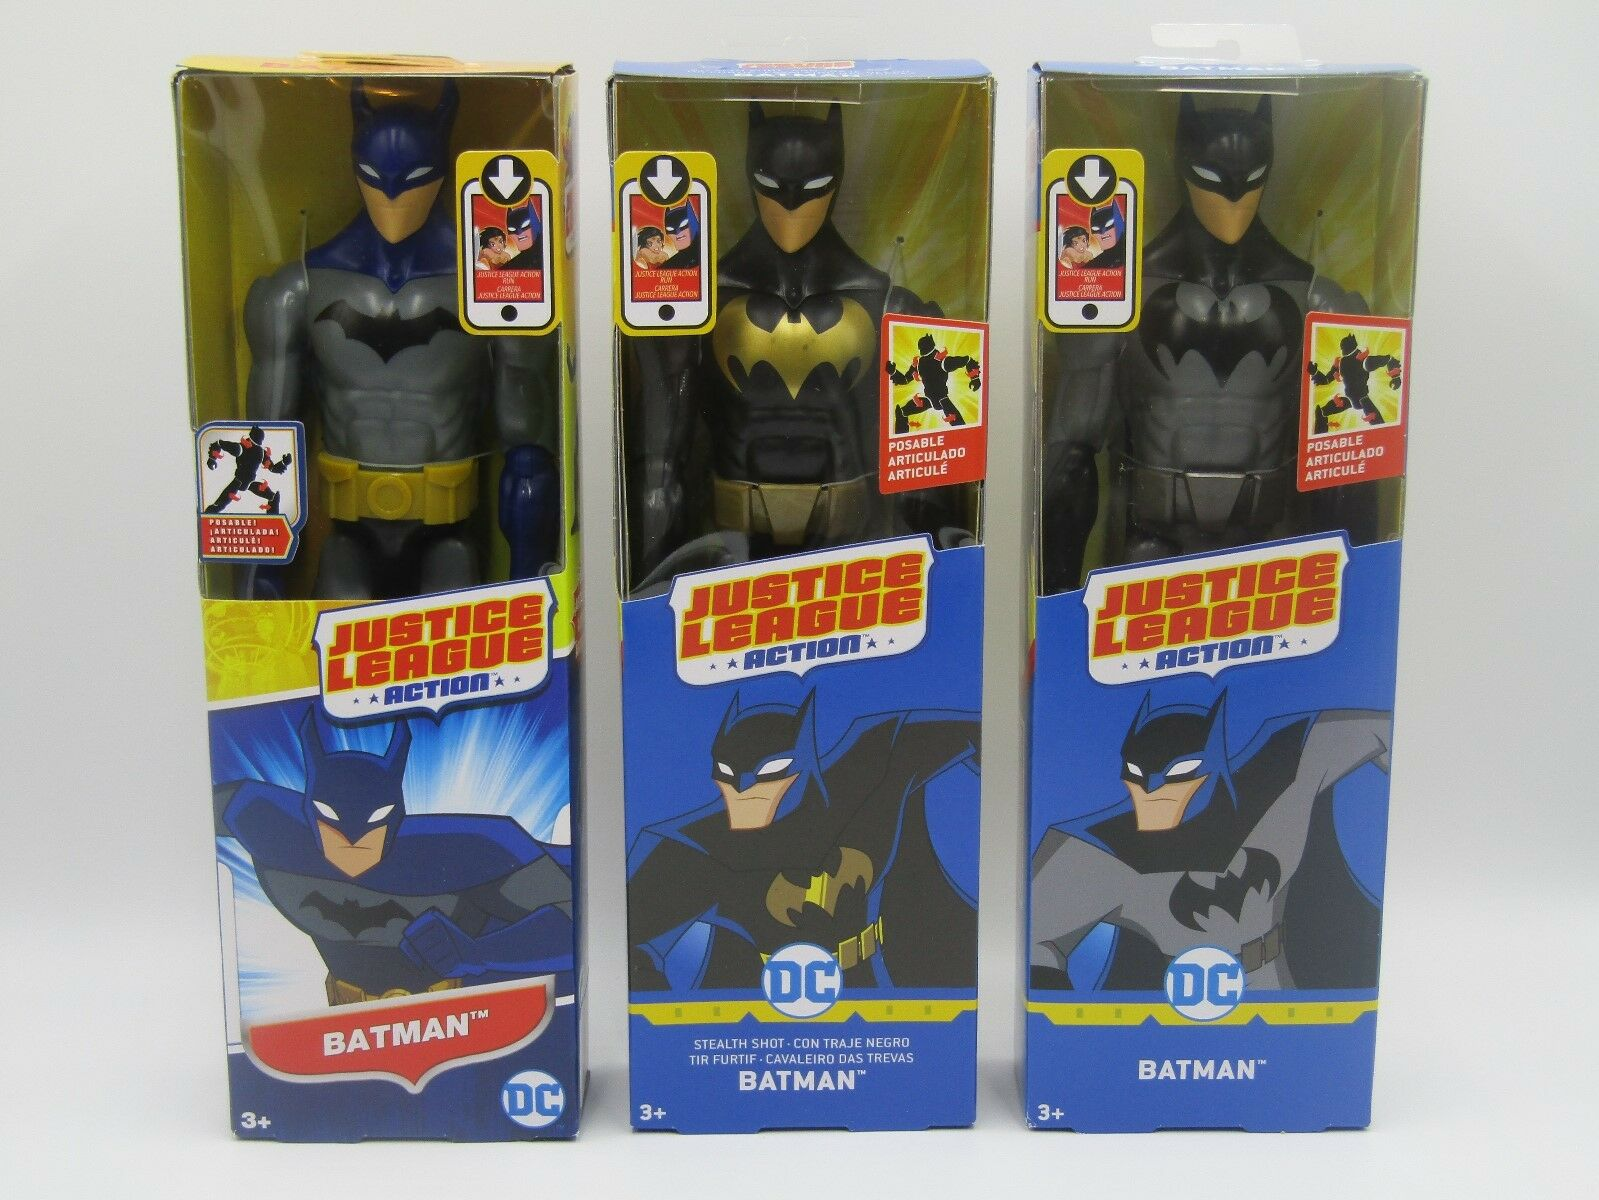 Justice League Batman Trio, Grau/blk, Grau/Blau & Blk/Blk 12in Action Figures